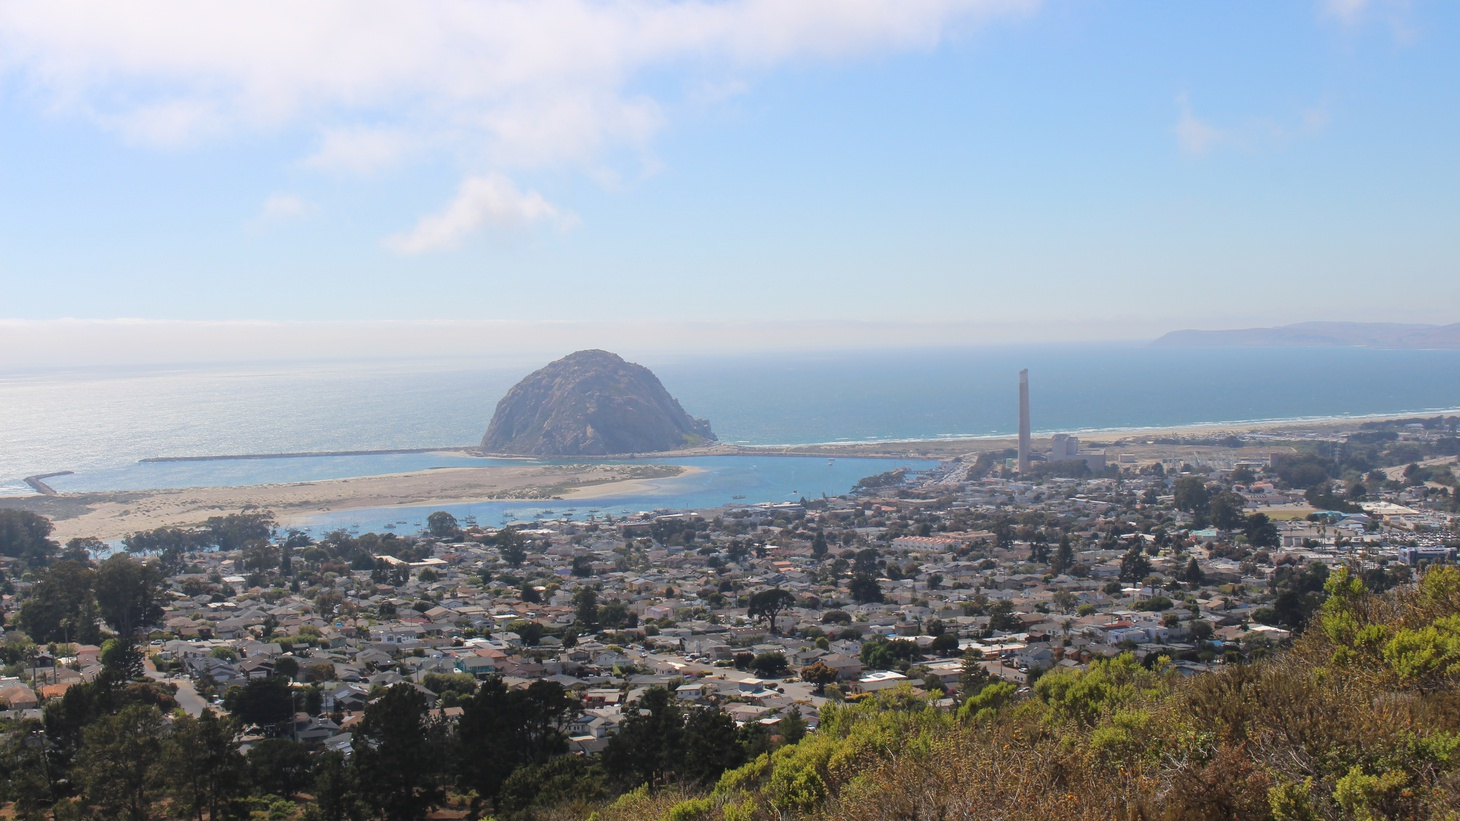 A view of the Morro Bay harbor from Black Hill. The wind farm will be located northwest of the city and impact local fishermen.